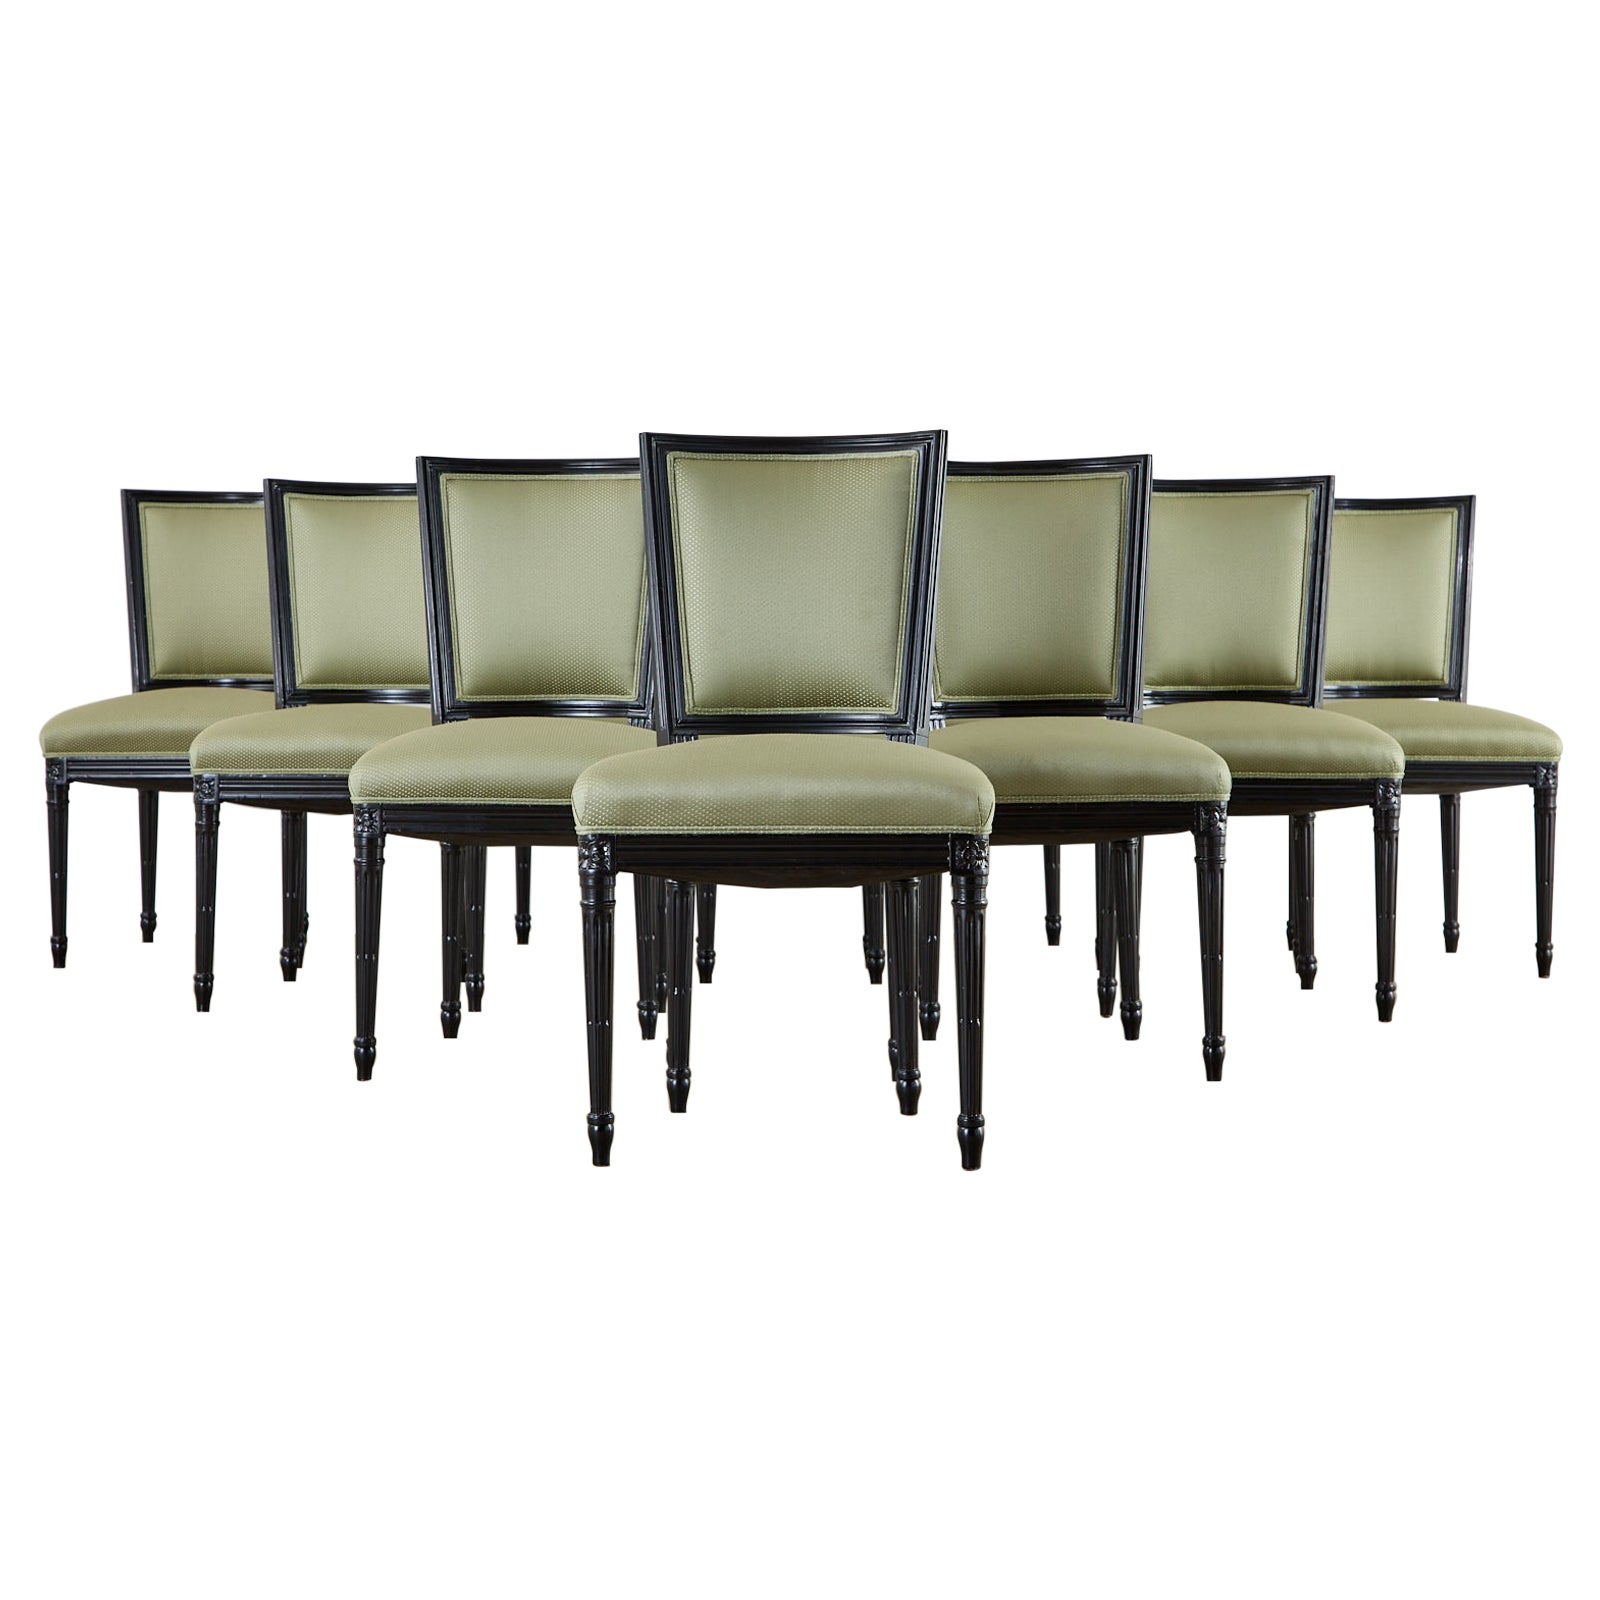 Set of Ten Maison Jansen Louis XVI Style Lacquered Dining Chairs